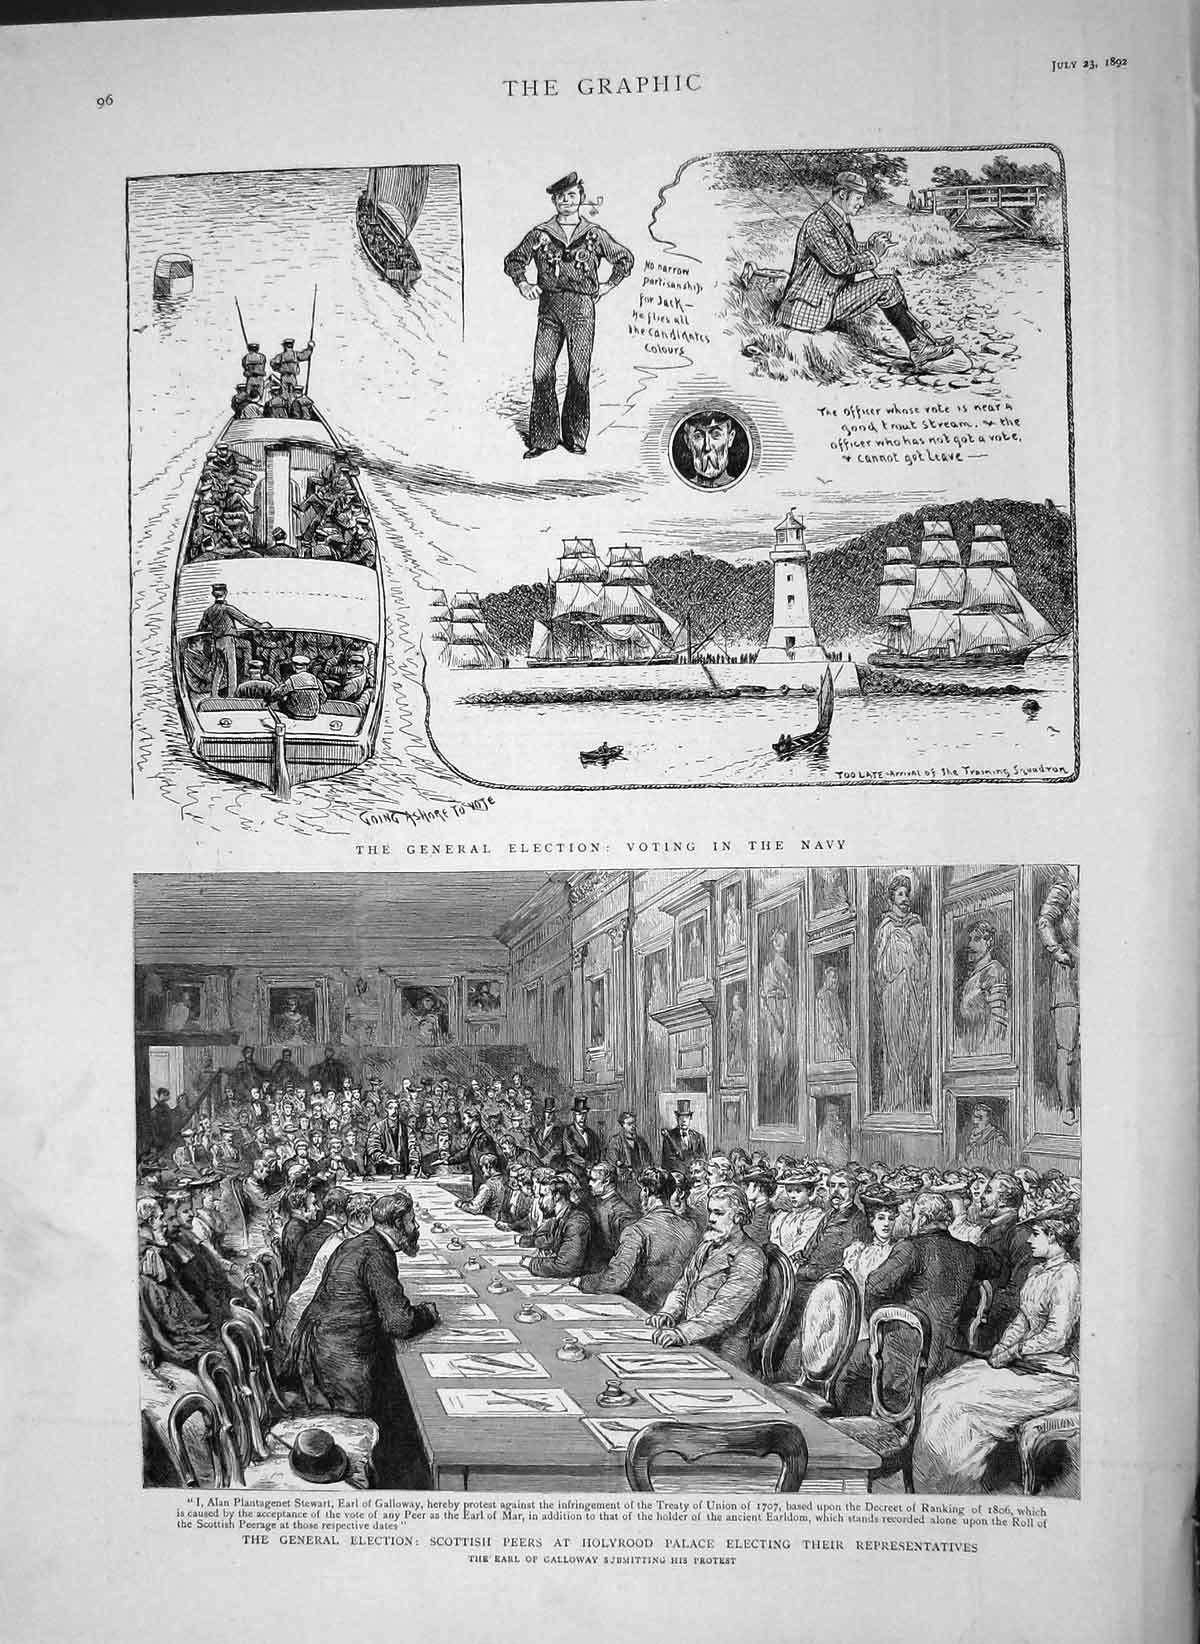 Original-Old-Antique-Print-1892-General-Election-Scottish-Peers-Holyrood-Palace